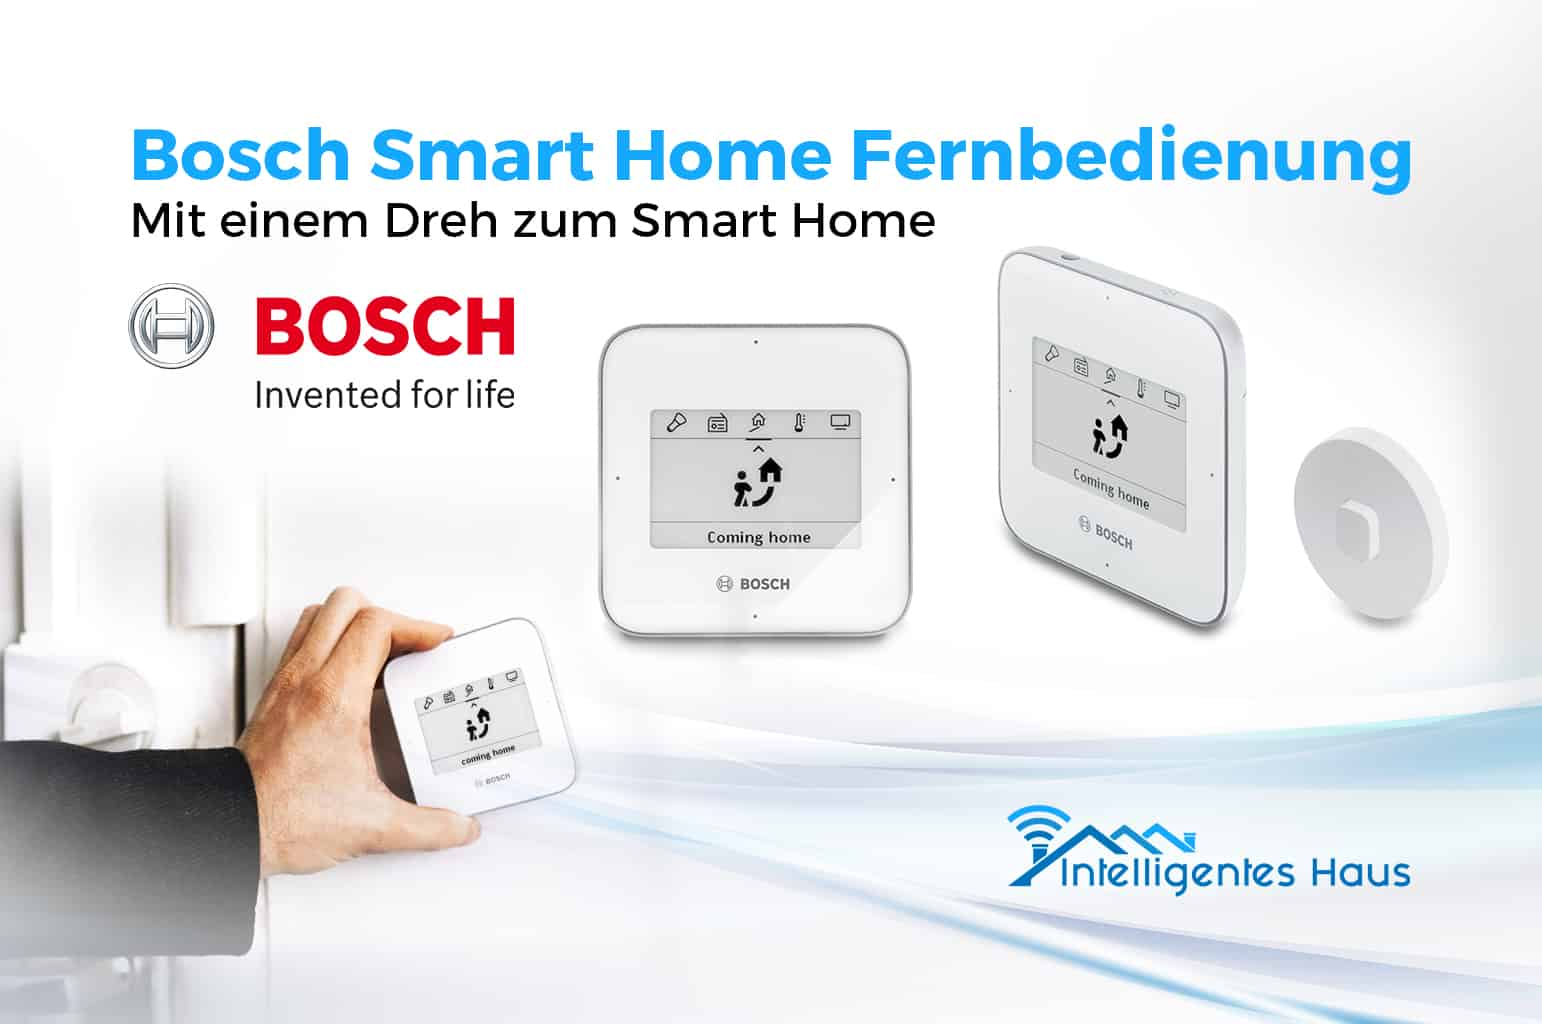 bosch stellt smart home fernbedienung twist vor. Black Bedroom Furniture Sets. Home Design Ideas